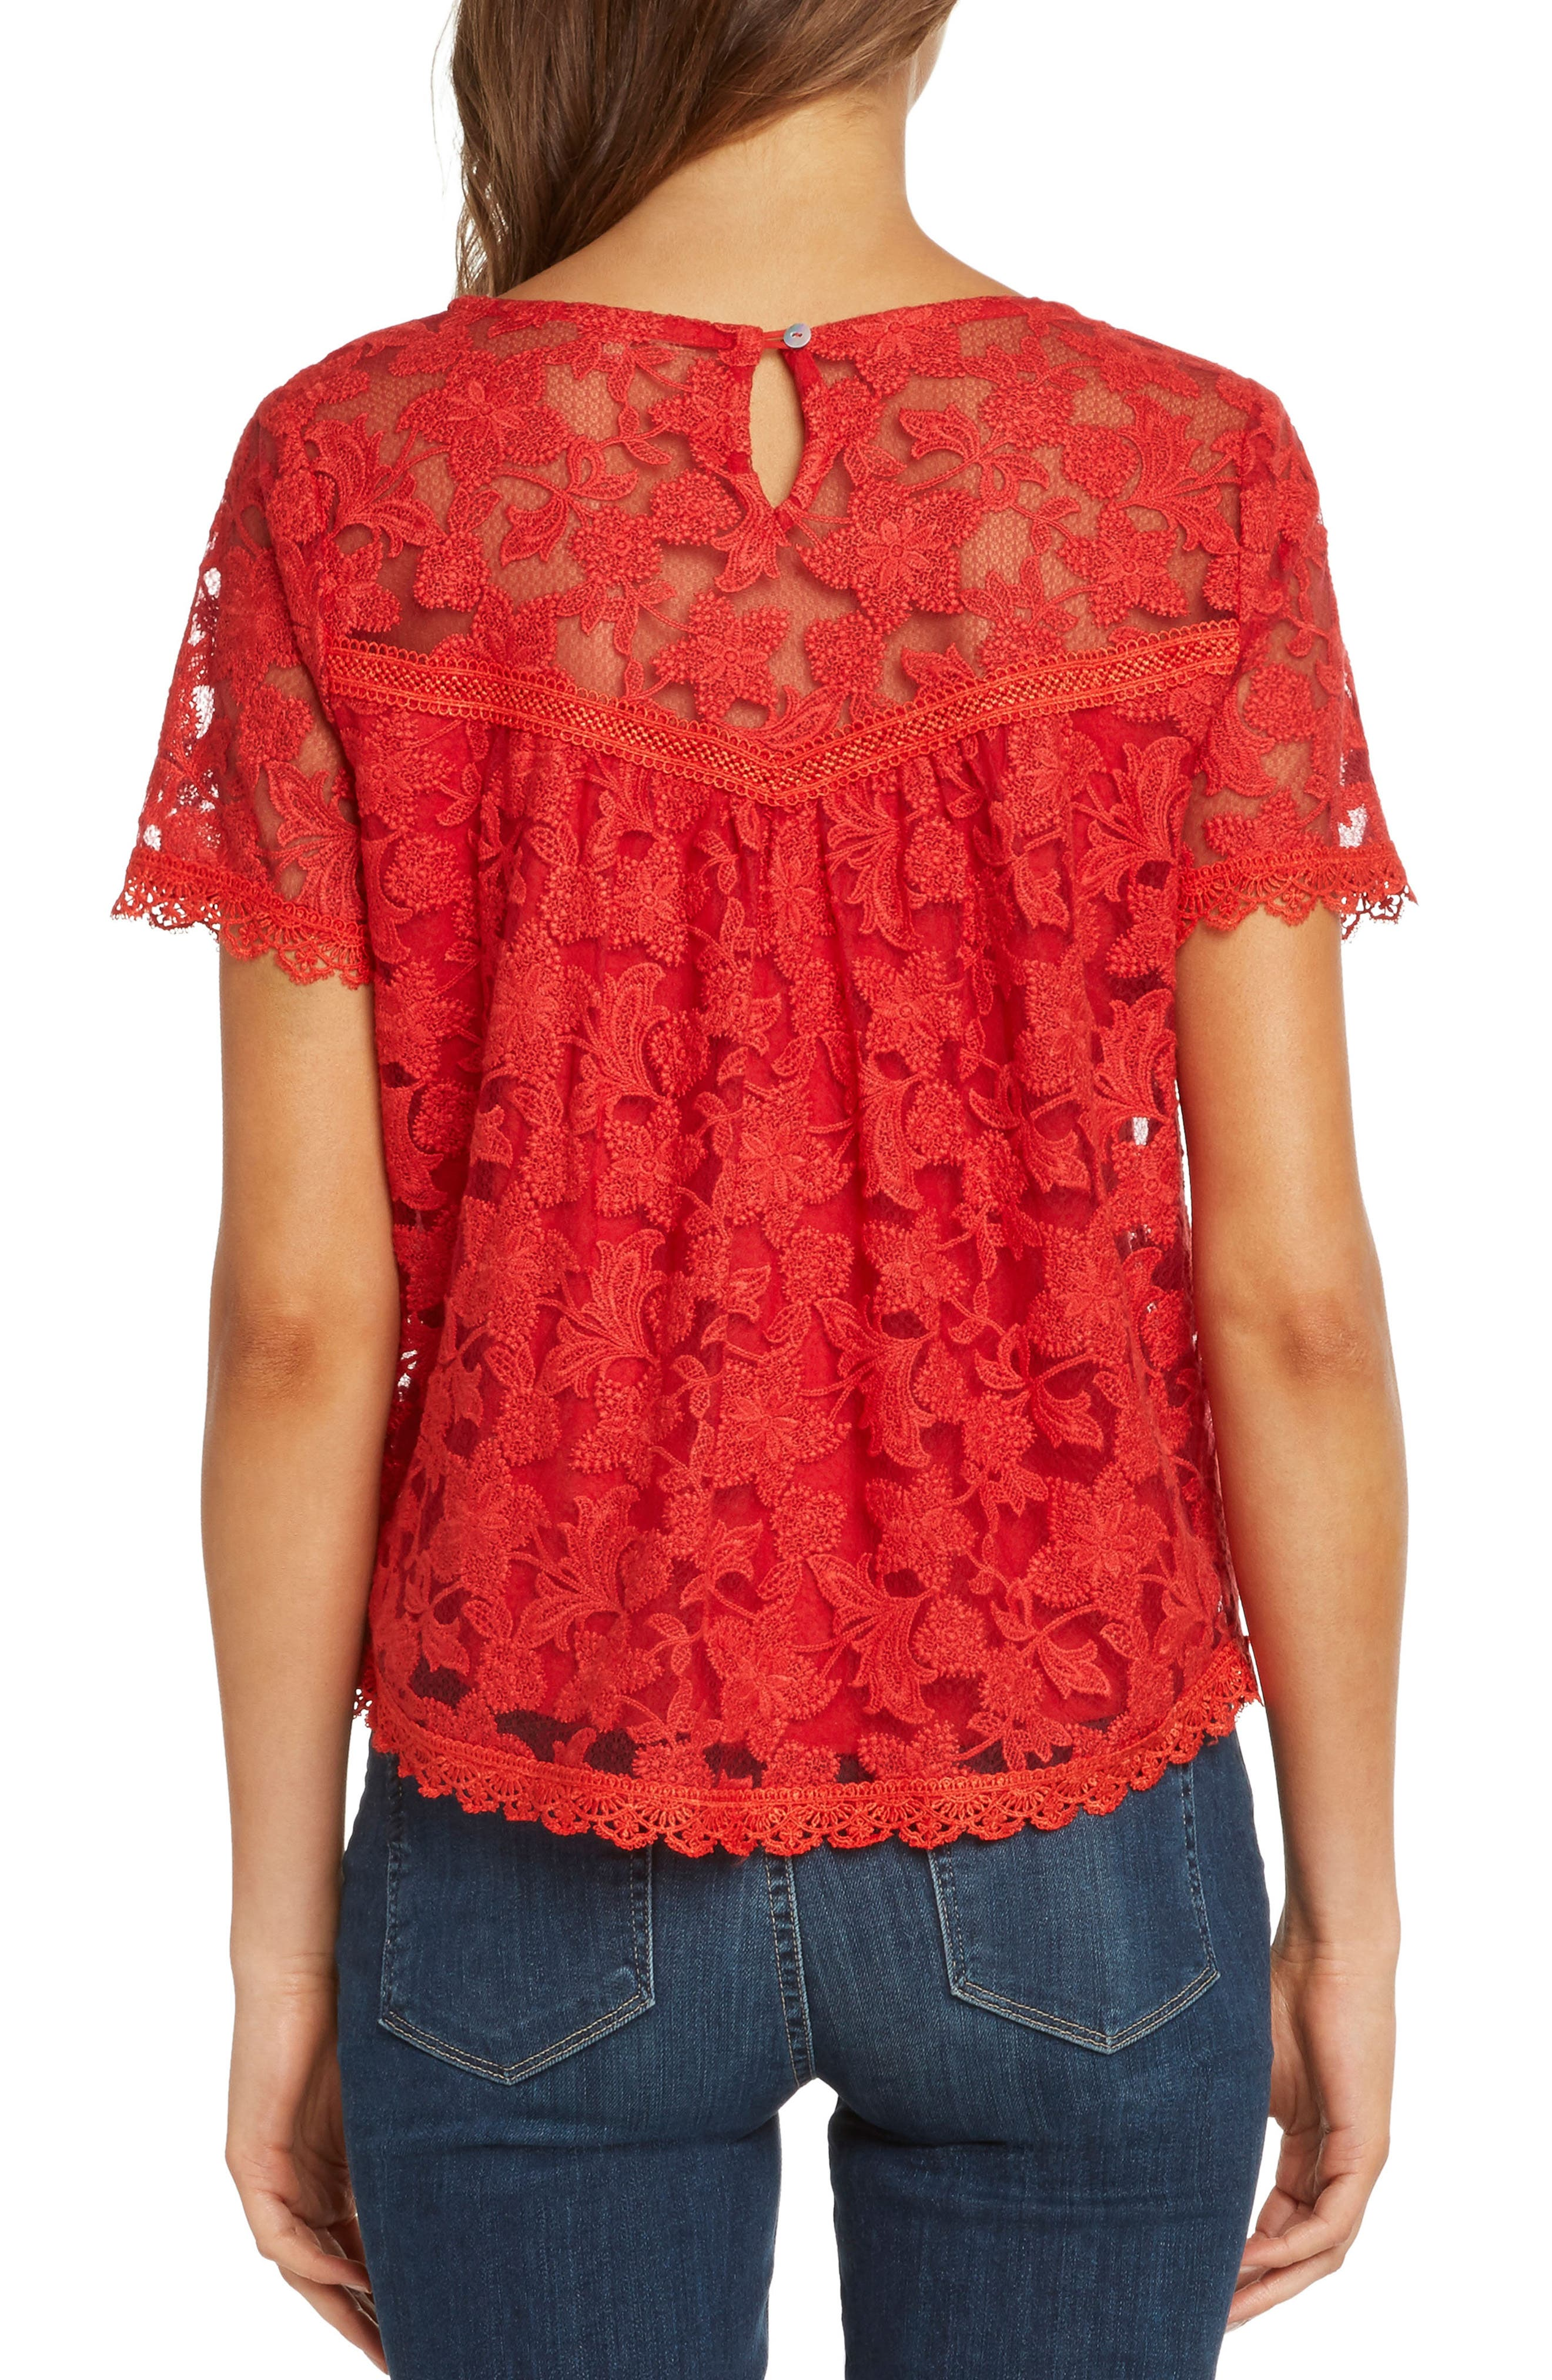 WILLOW & CLAY,                             Inset Detail Lace Top,                             Alternate thumbnail 2, color,                             643